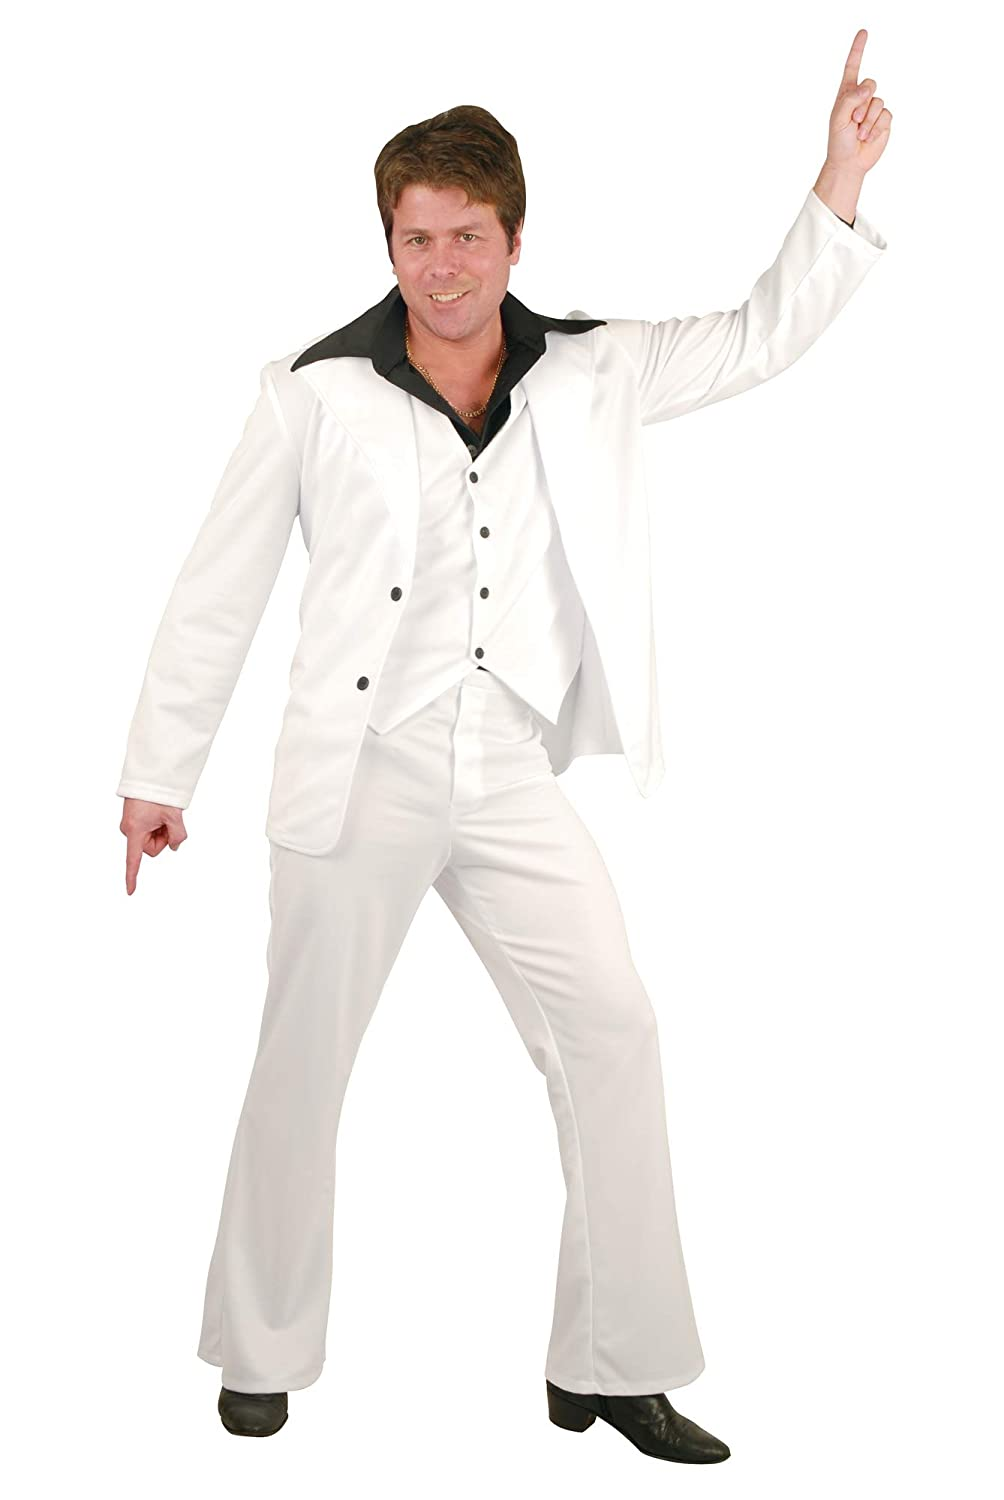 70s Costumes: Disco Costumes, Hippie Outfits Charades Mens Disco Fever Suit $51.64 AT vintagedancer.com